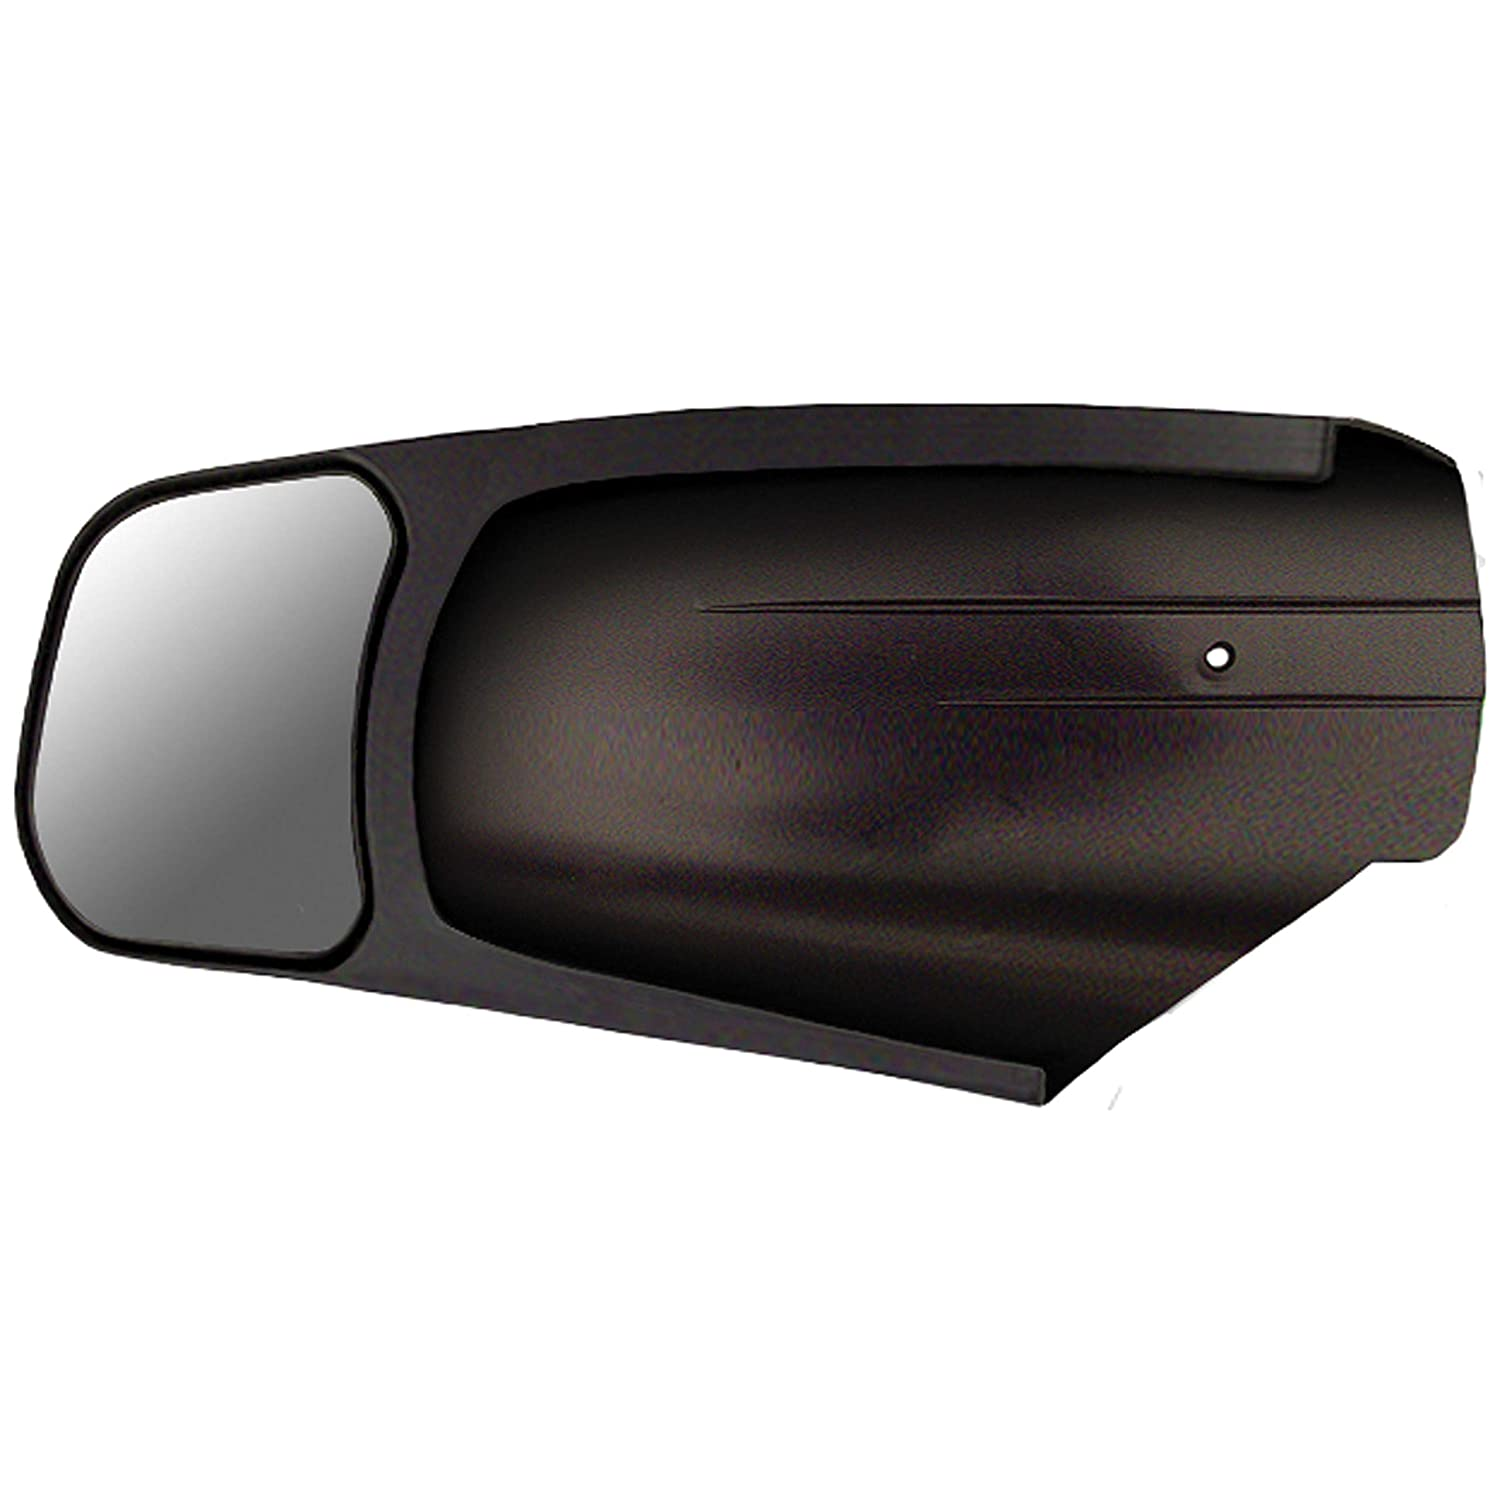 Cipa Black Usa 10950 Tow Mirror Pair 2014 Chevy 2 Pack 1976 Camper Special Truck Automotive